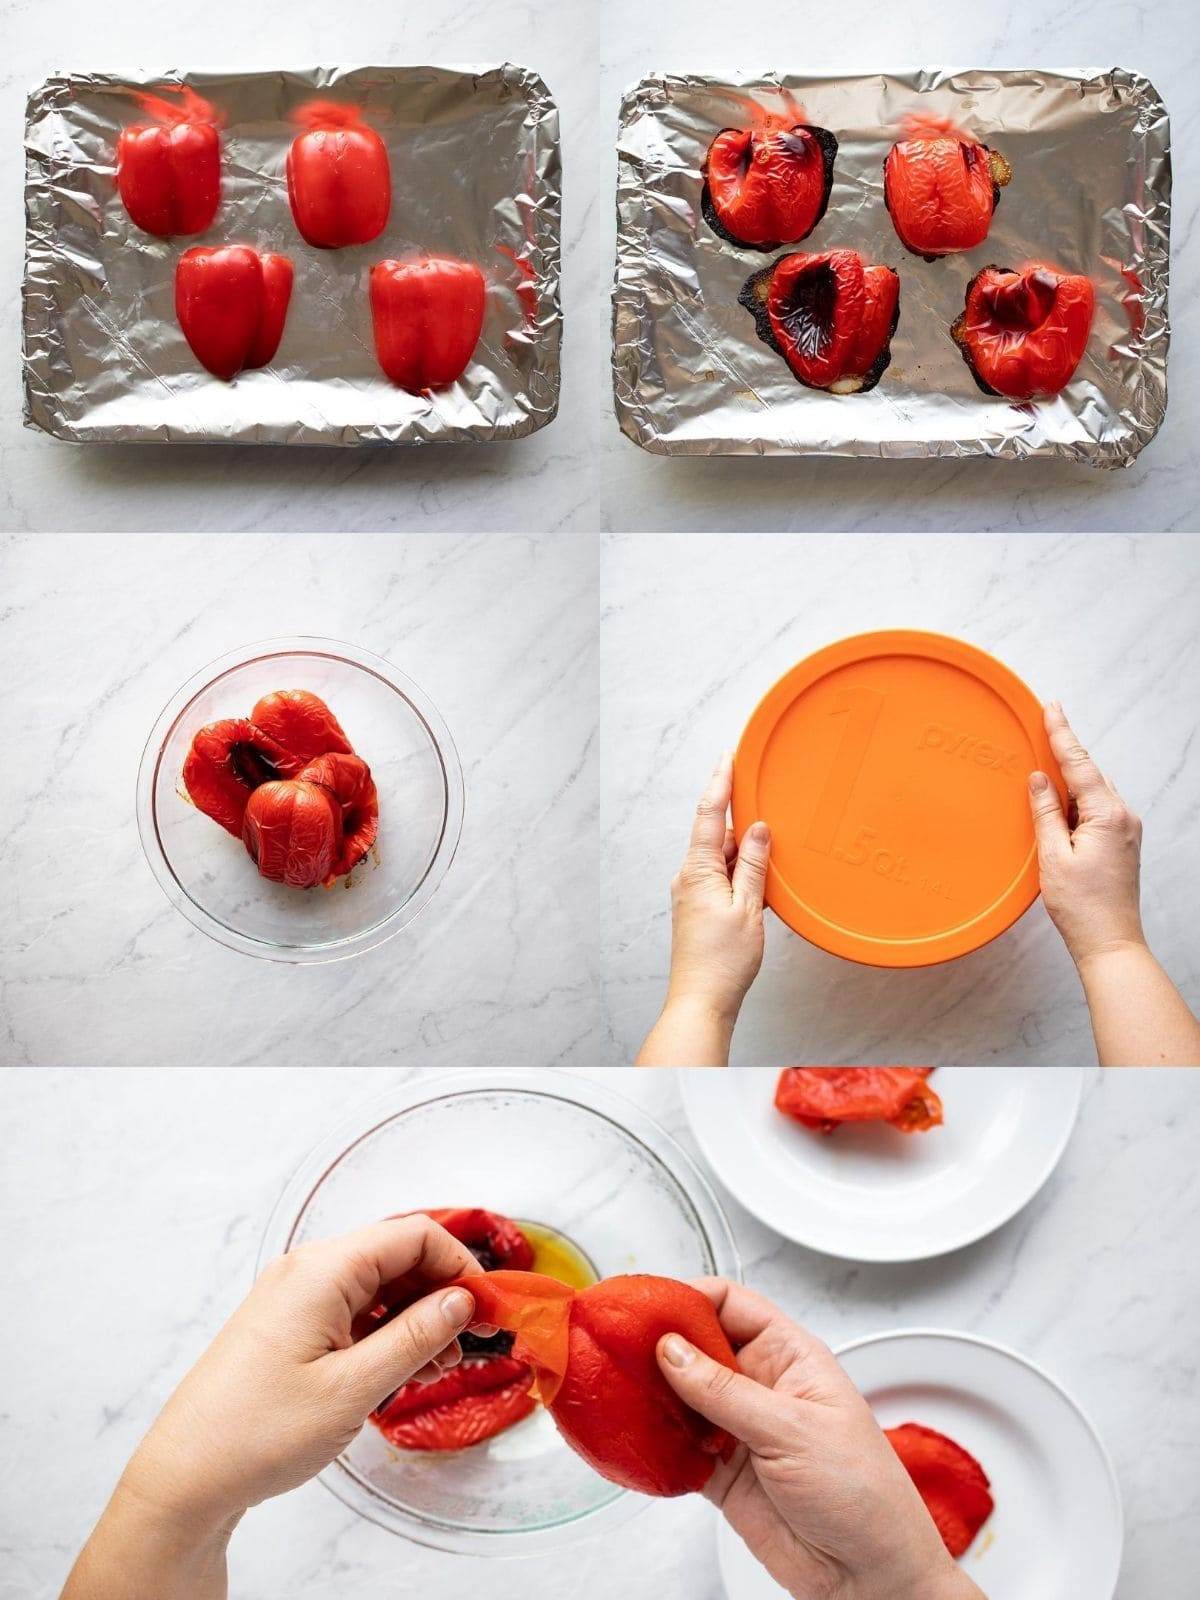 Five pictures depicting how to roast red peppers. First, red bell pepper halves are placed cut side down onto. a rimmed baking sheet lined with aluminum foil. The second shows the red peppers wilted and slightly charred after roasting. Third, the roasted peppers are transferred to a glass bowl. Fourth, the bowl is covered with a lid to cool. And fifth, the skins of the roasted peppers are being peeled off.